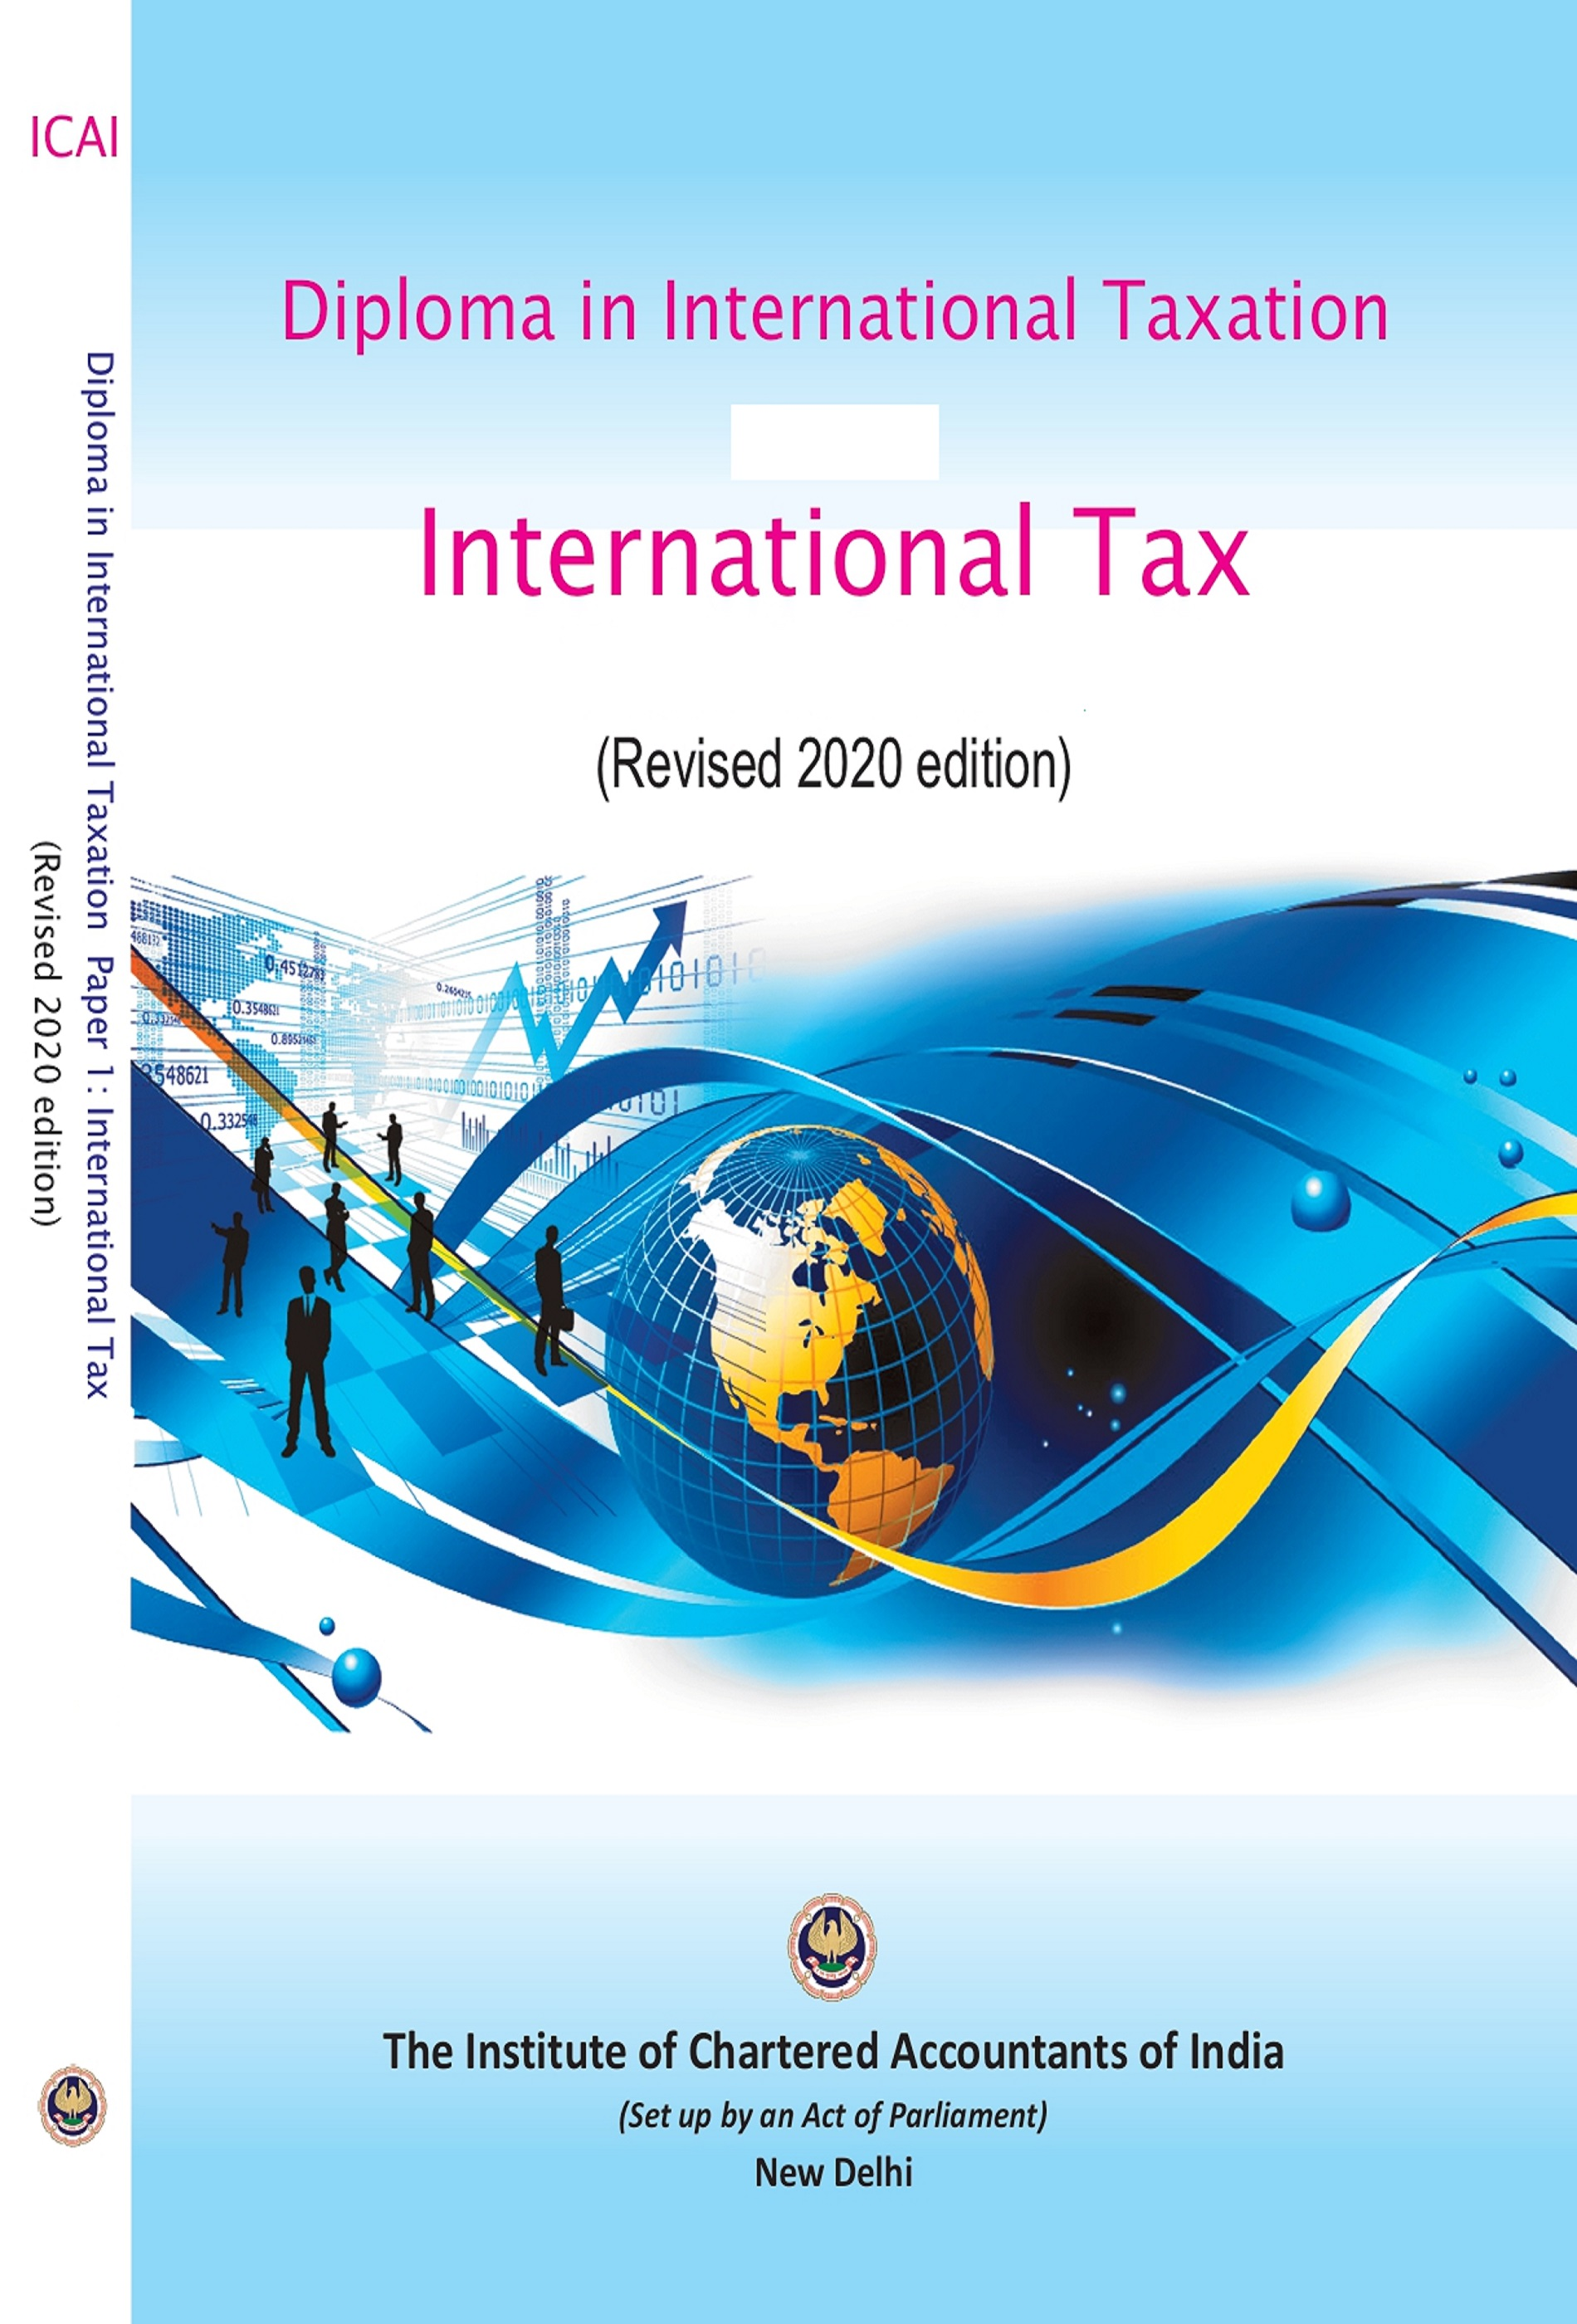 Diploma in International Taxation Paper - 1 & 2 International Tax: Transfer Pricing and Practice (Part I&II) (Revised 2020 edition)